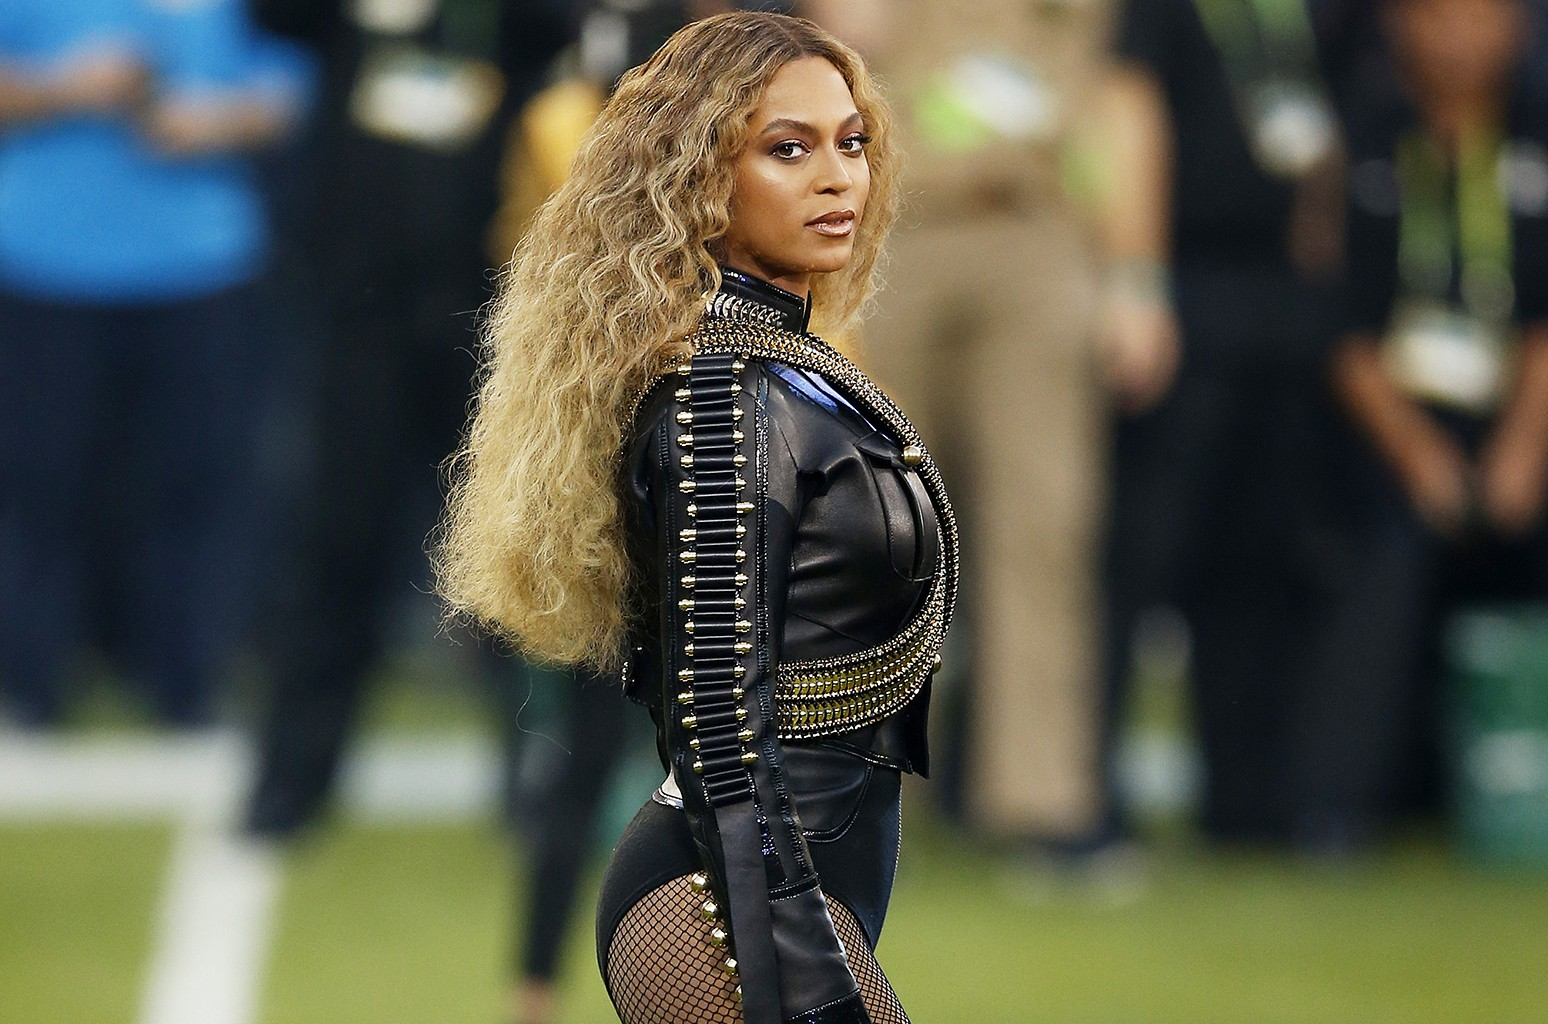 Beyonce performs during the Super Bowl Halftime Show